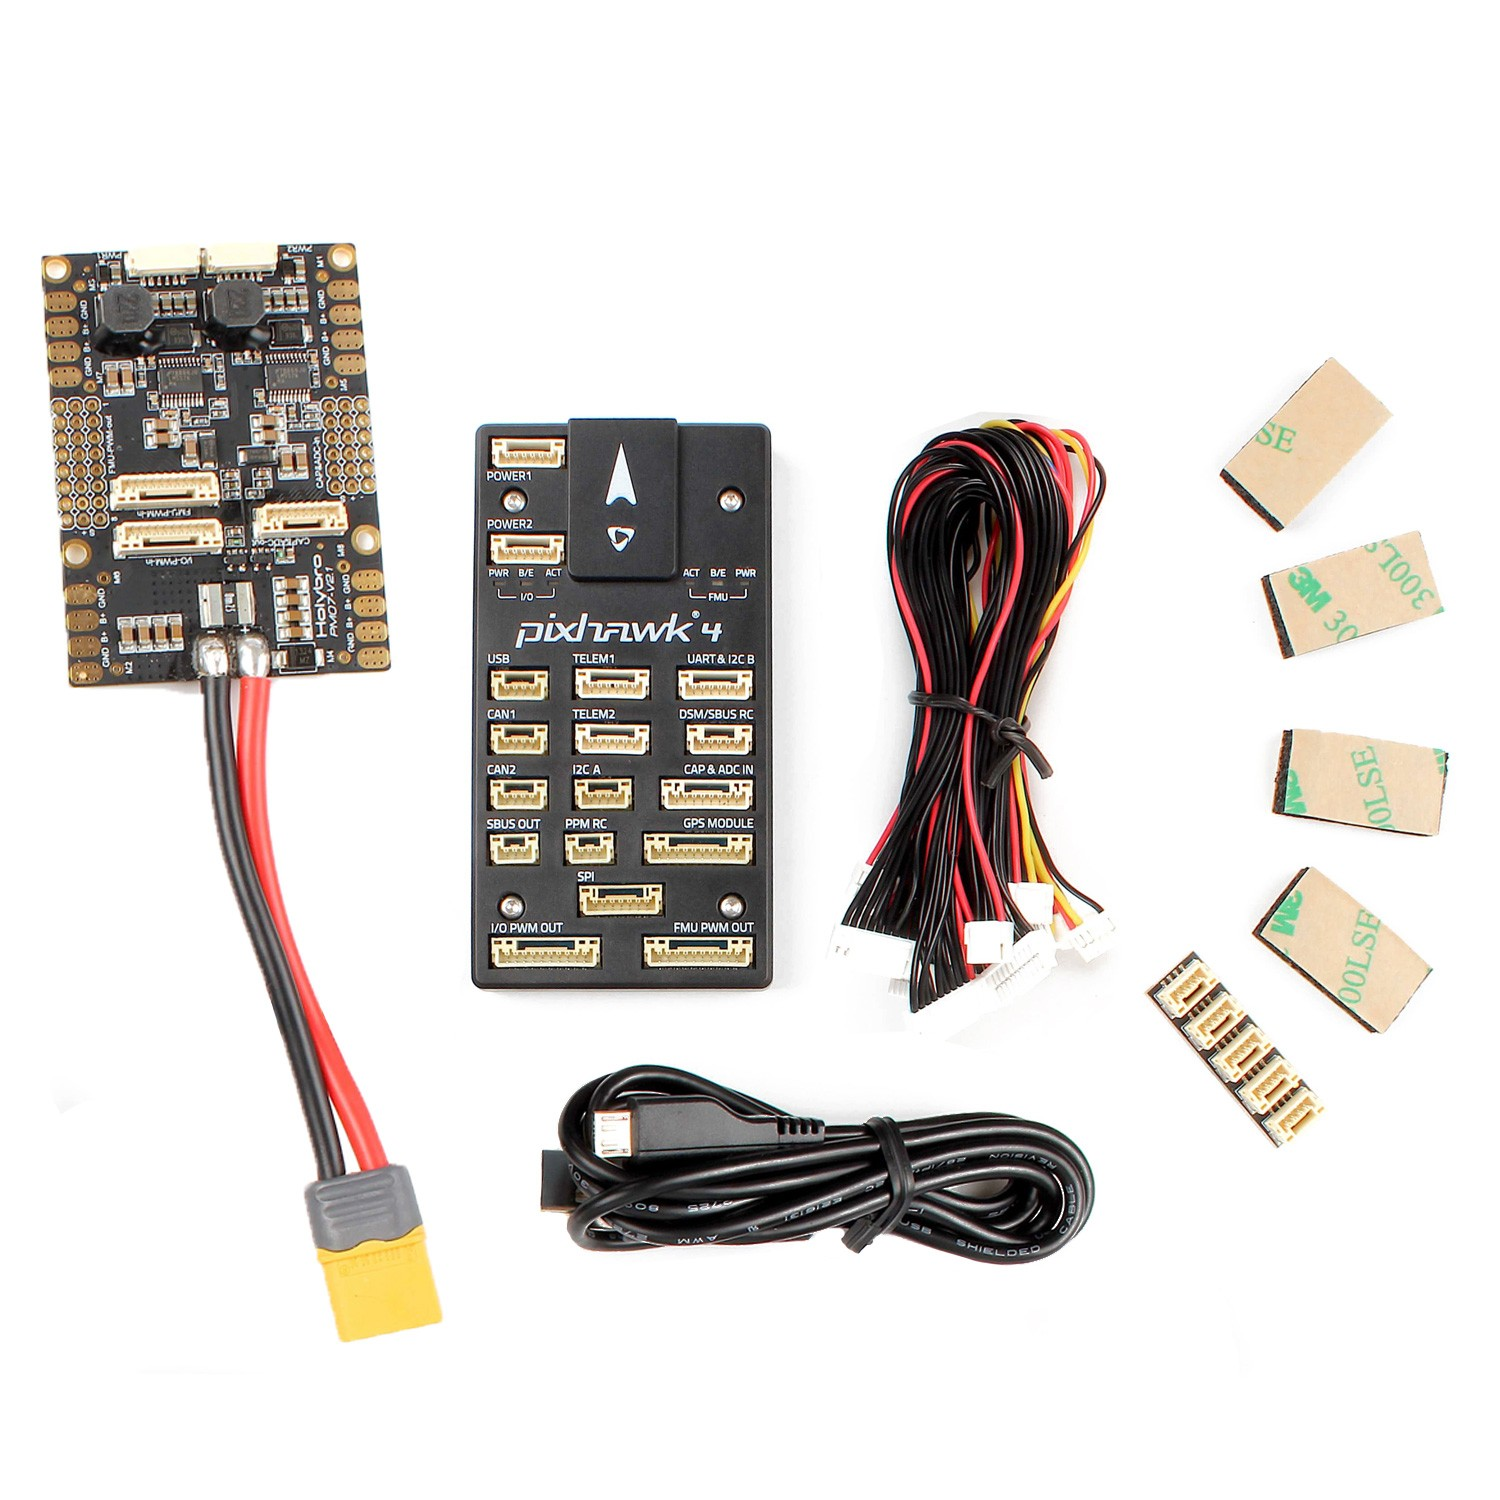 Holybro Original Pixhawk PX4 Flight Controller (without GPS) - Robu in |  Indian Online Store | RC Hobby | Robotics